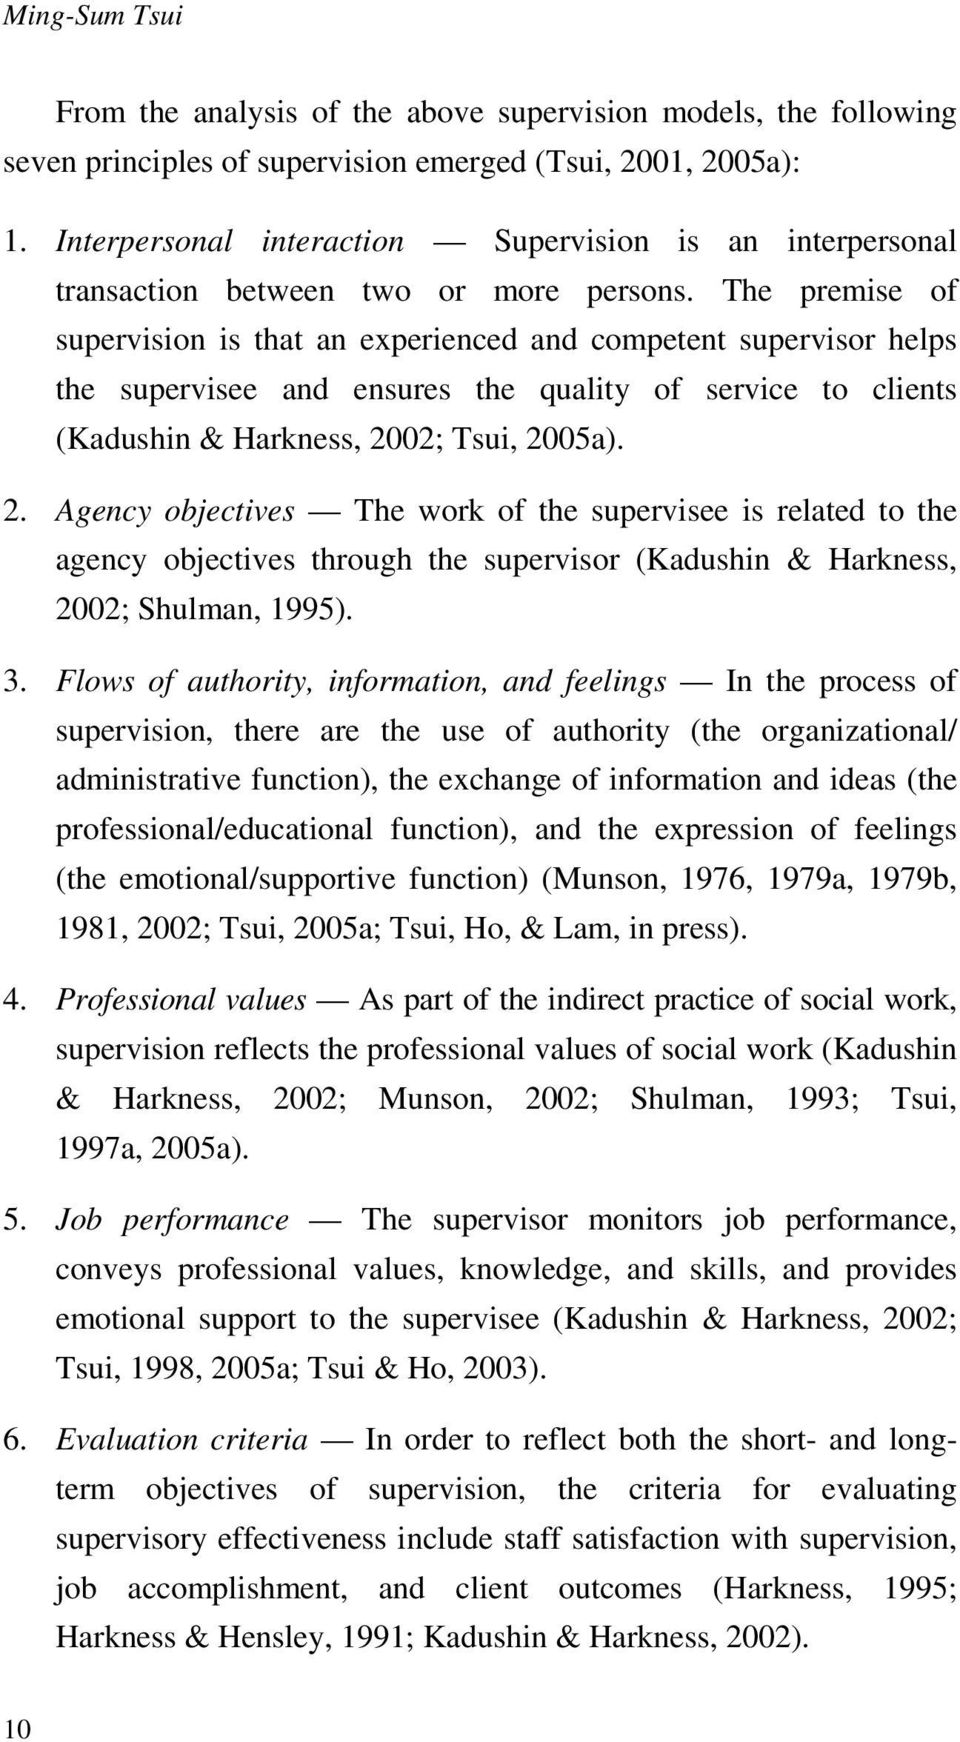 The premise of supervision is that an experienced and competent supervisor helps the supervisee and ensures the quality of service to clients (Kadushin & Harkness, 20